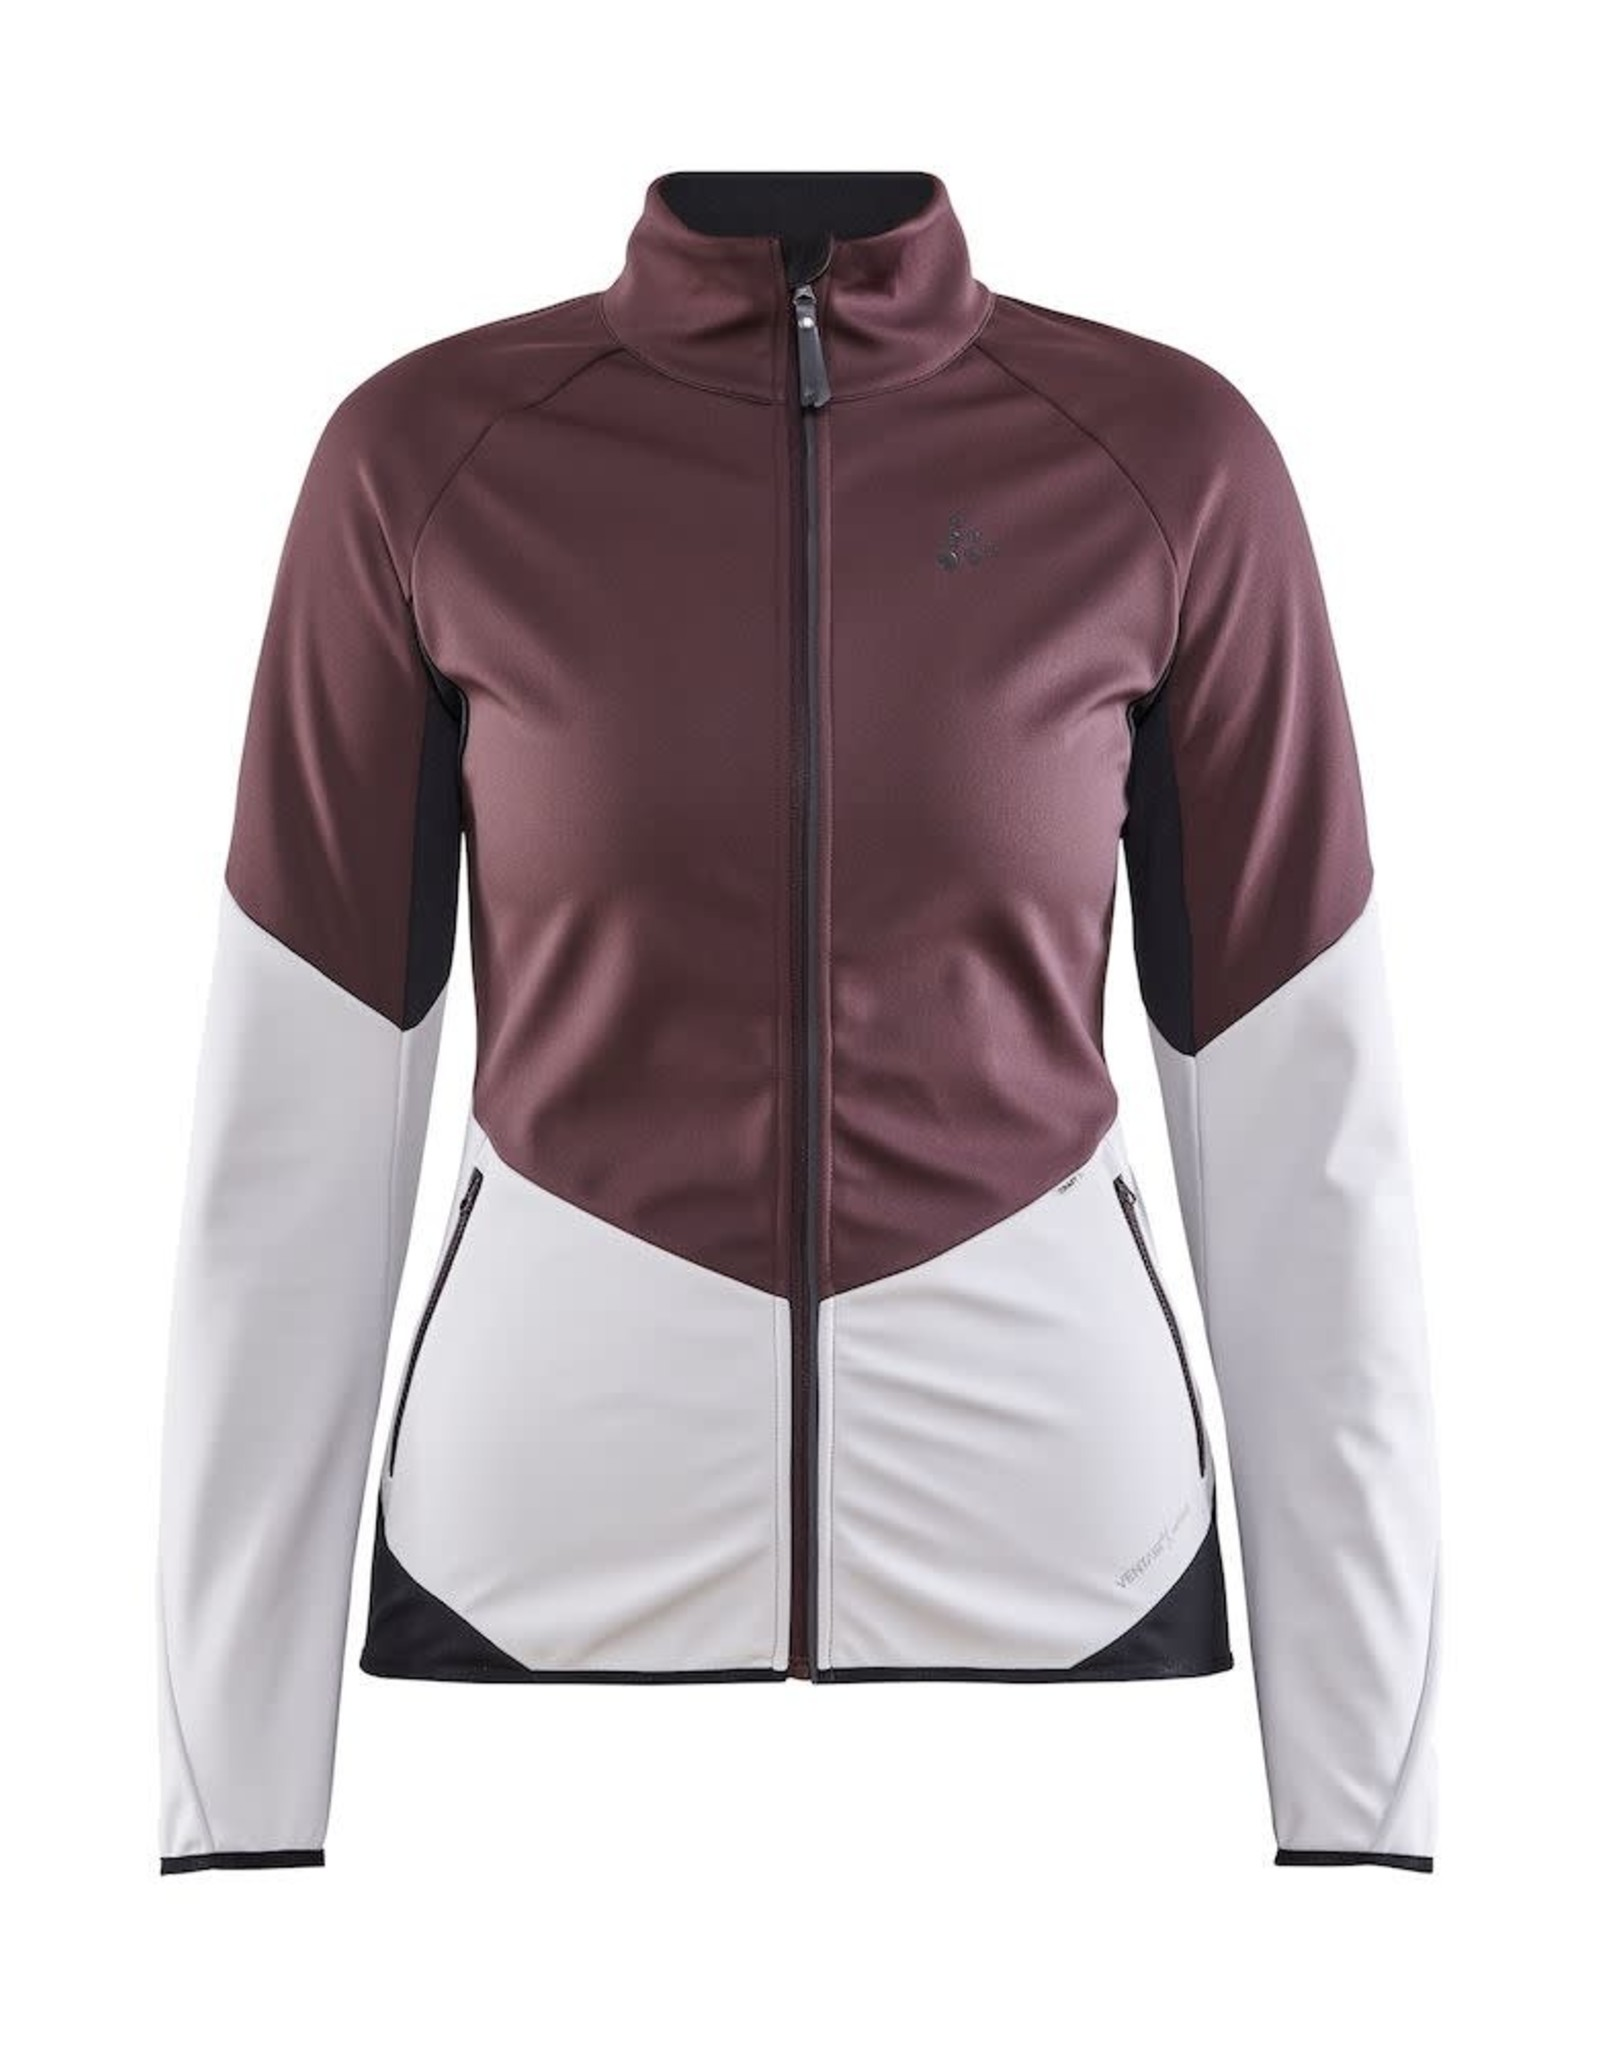 Craft Craft Glide Jacket Women's